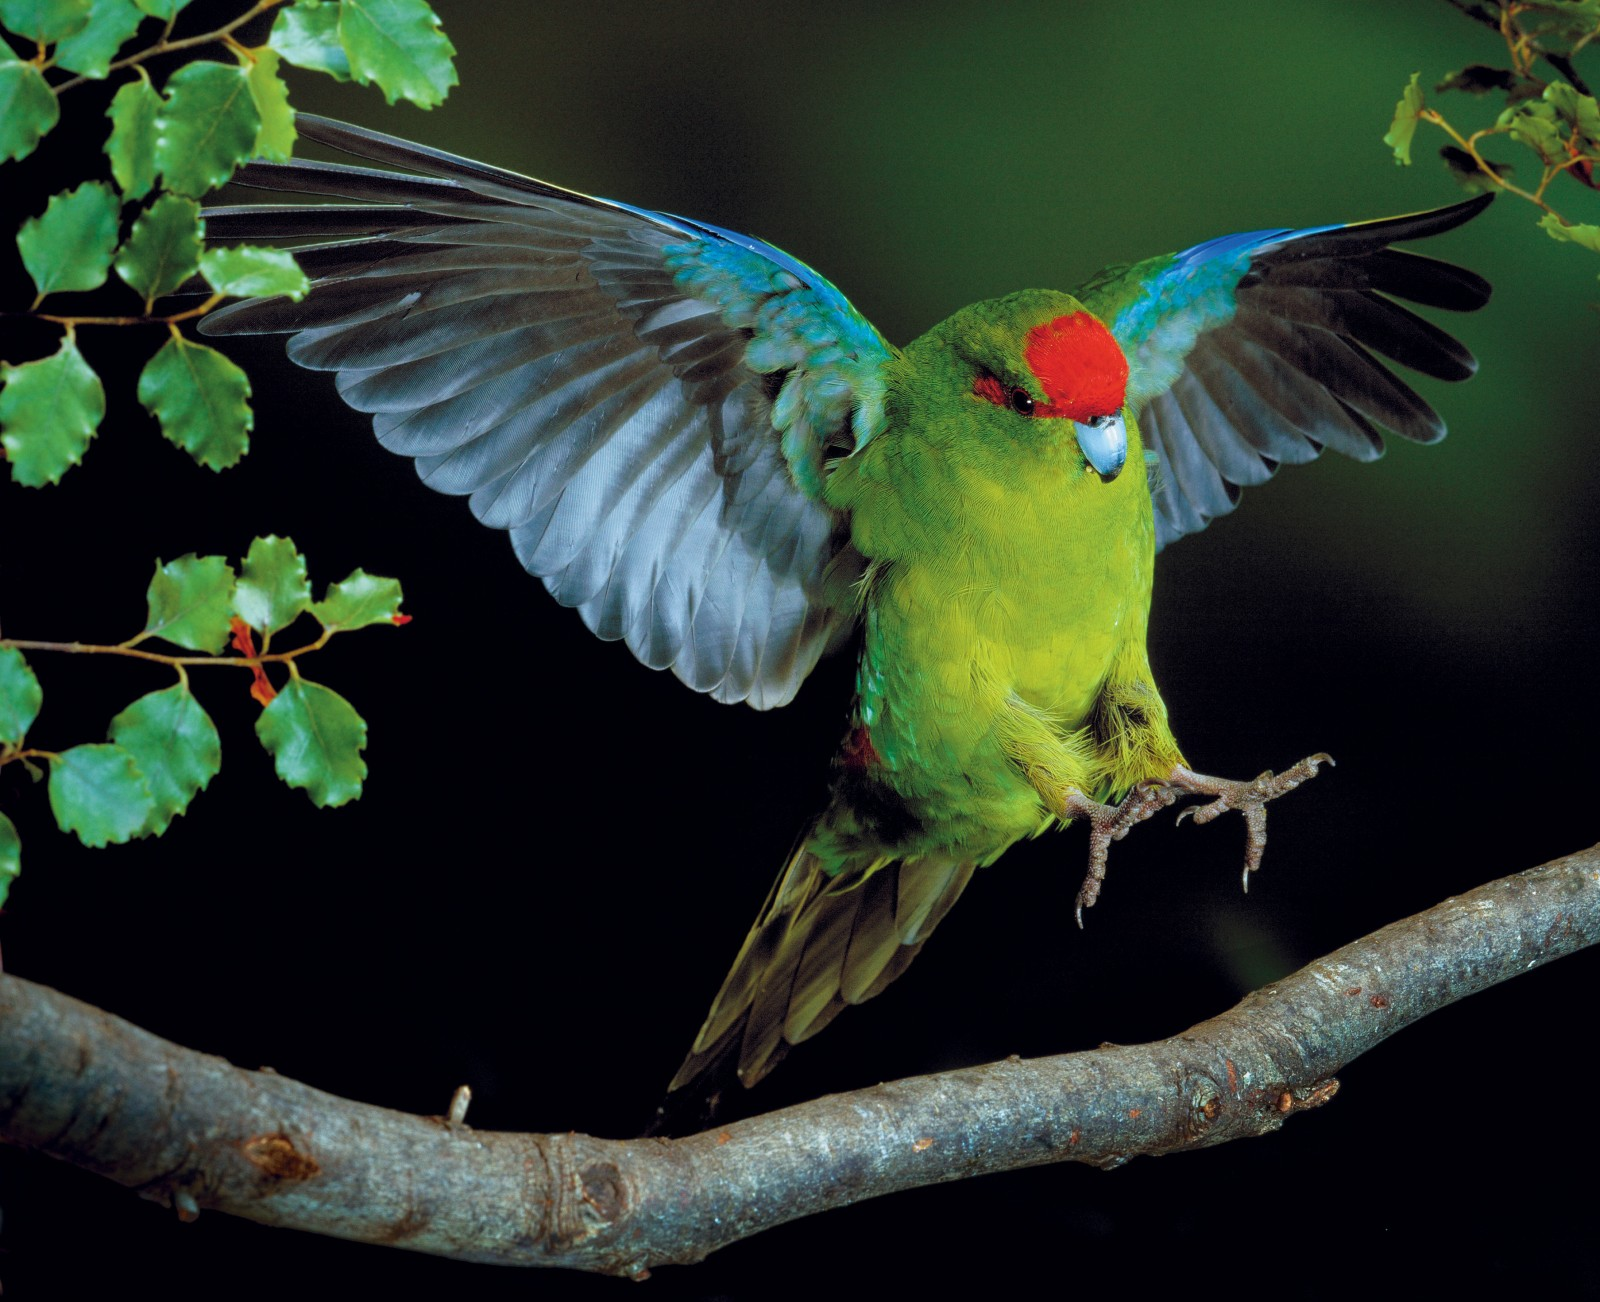 "A red-crowned parakeet exhibits its aerobatic prowess, swooping in to land on the branch of a southern beech tree. The extensive Nothofagus forests of the mainland once supported large populations of kakariki where they nested in hollow limbs, holes or stumps of trees, and relied on the regular fruiting, or beech mast, for food. Locally extinct on the mainland since the 1900s, red-crowned kakariki now reside only on offshore islands where there is less pressure from predators. However in 2001, and again in 2004, two pairs of red-crowned parakeets were reported in Porirua Scenic Reserve, probably having flown from Kapiti Island where, according to DOC's Colin Miskelly, kakariki are flourishing. ""They are the species that benefited most from rat eradication on Kapiti Island in 1996, with approximately four times as many birds counted after rat eradication as before"" he said. It could be an auspicious prelude to the long-awaited return of kakariki to the mainland."